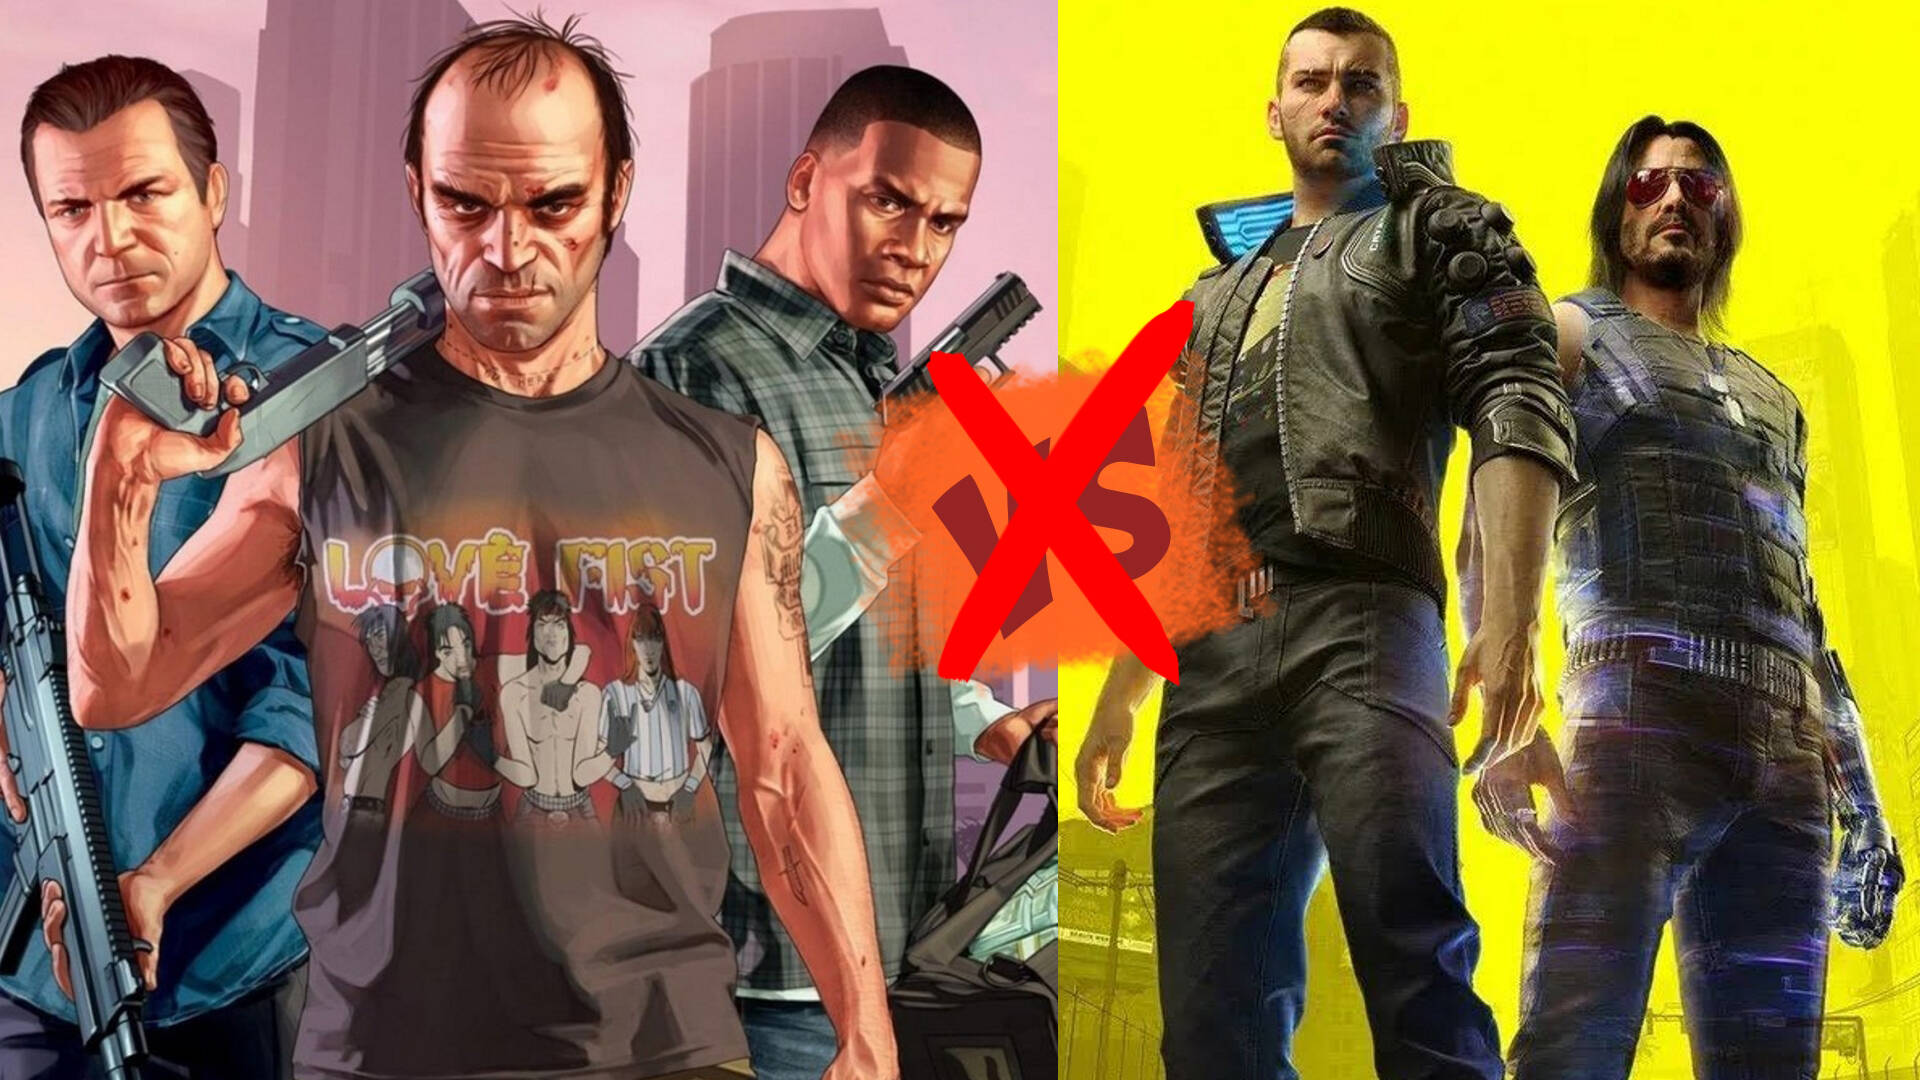 No Cyberpunk 2077 vs GTA V